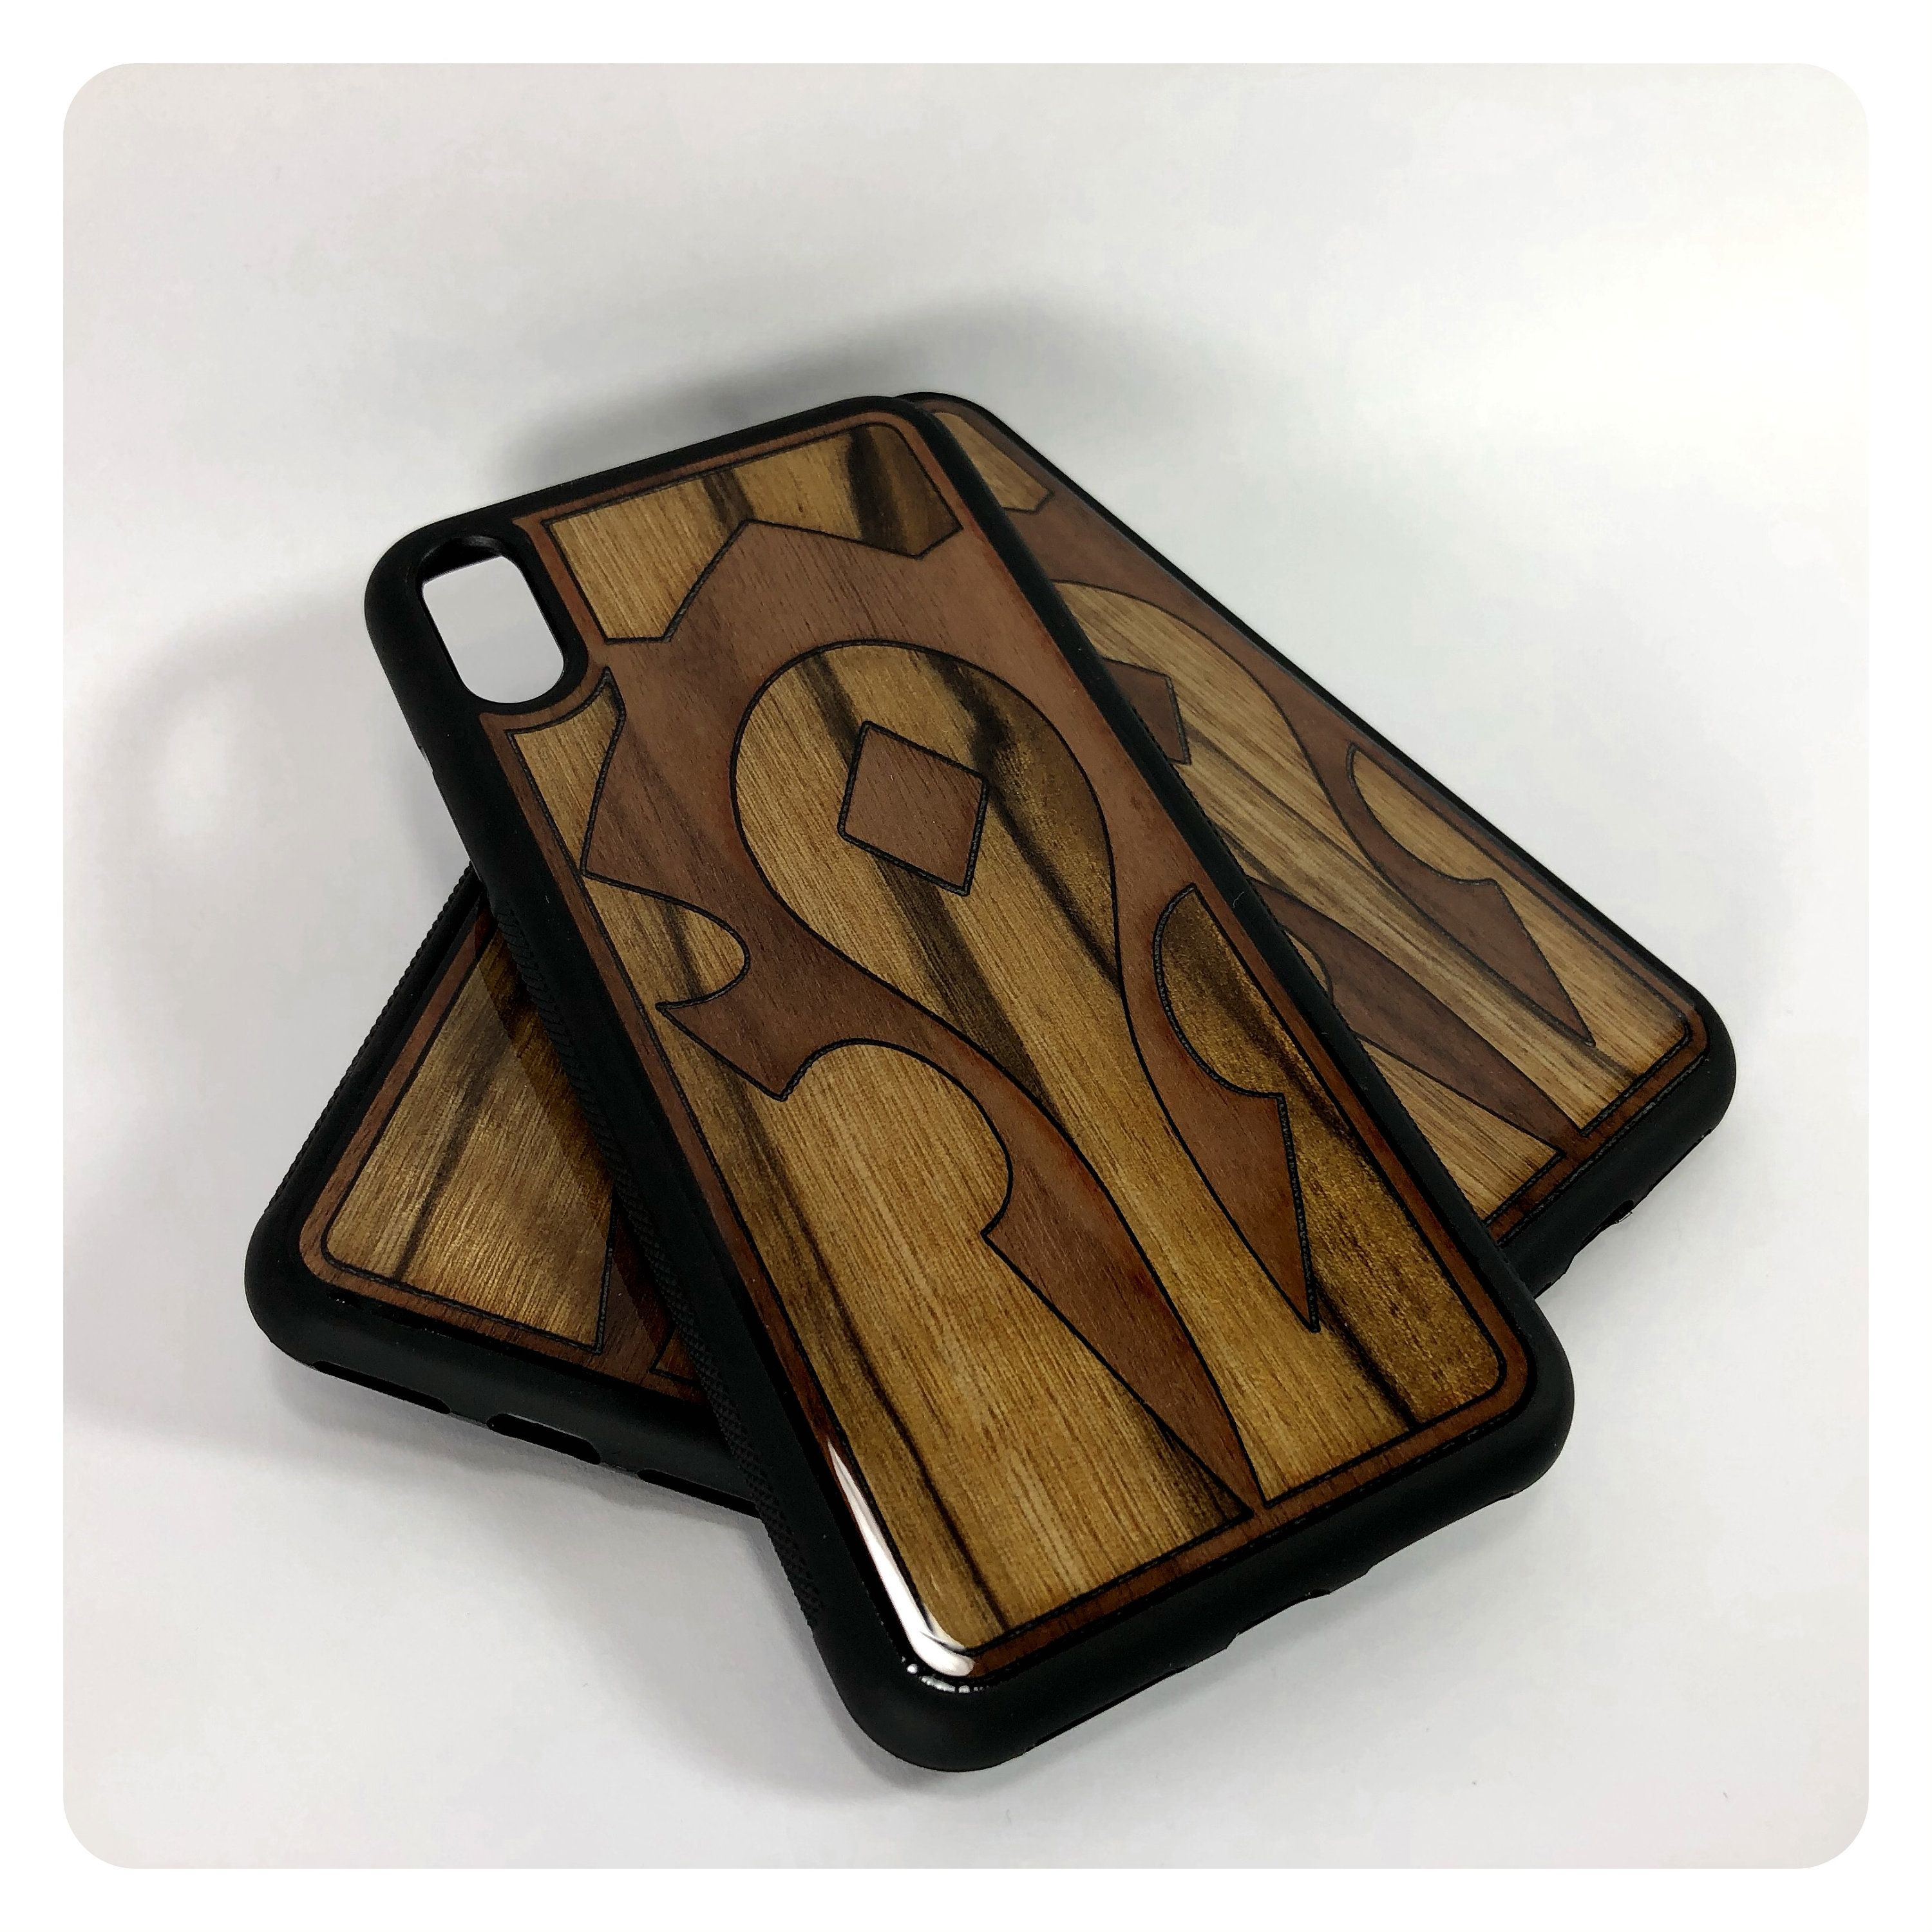 For the horde wood inlay iphone cover rubber case with